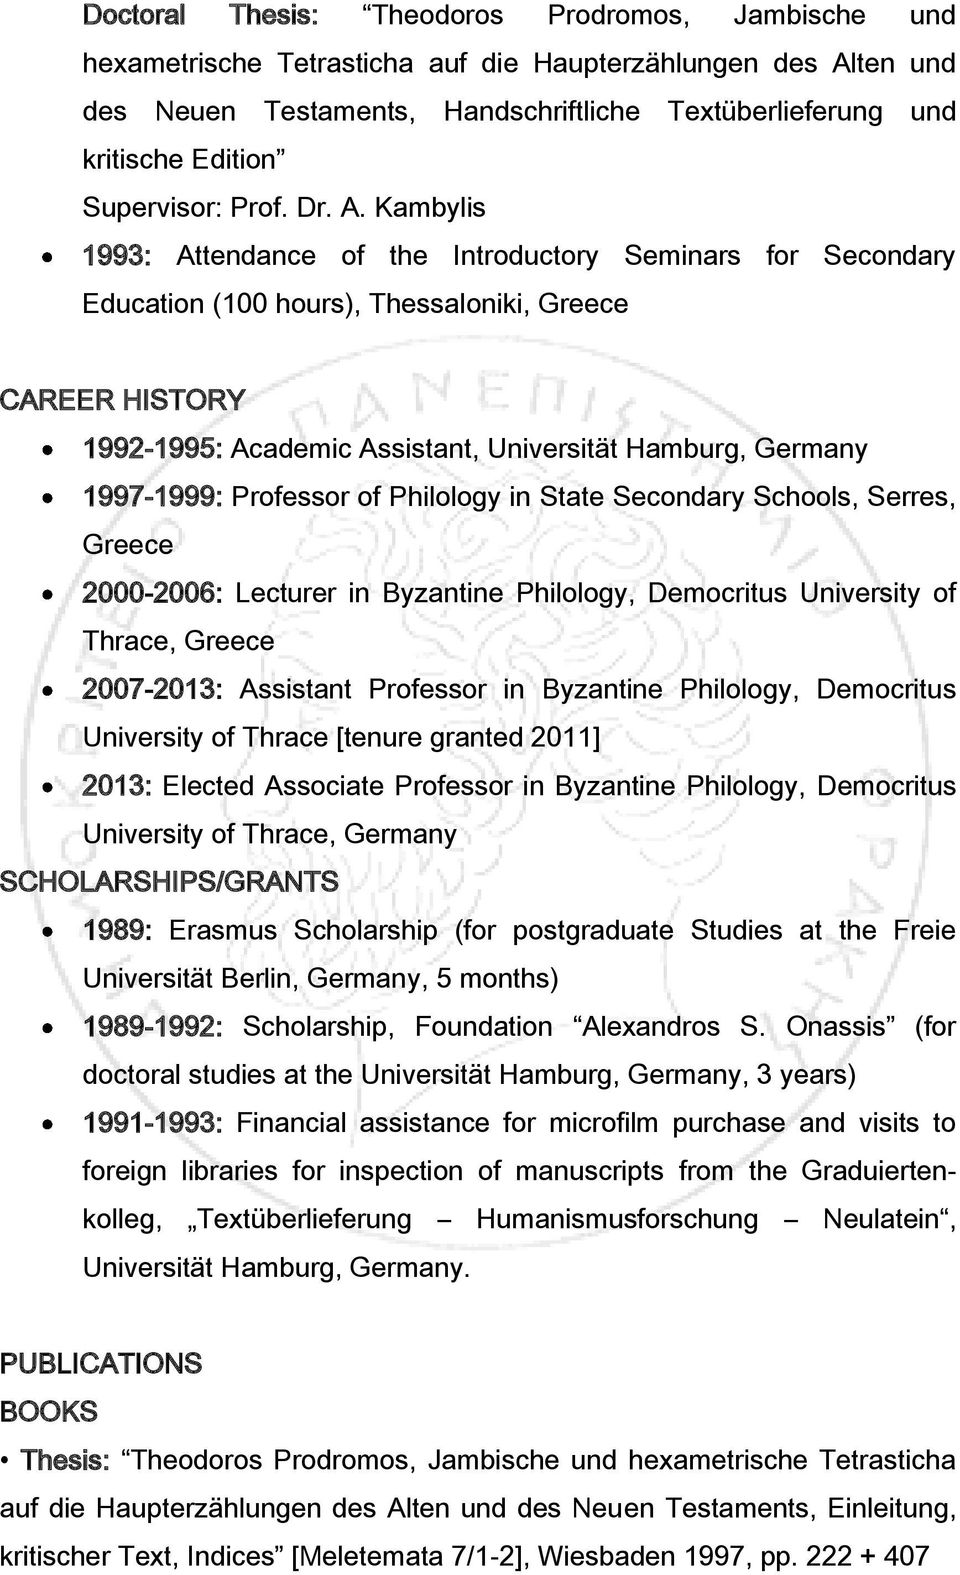 Kambylis 1993: Attendance of the Introductory Seminars for Secondary Education (100 hours), Thessaloniki, Greece CAREER HISTORY 1992-1995: Academic Assistant, Universität Hamburg, Germany 1997-1999: